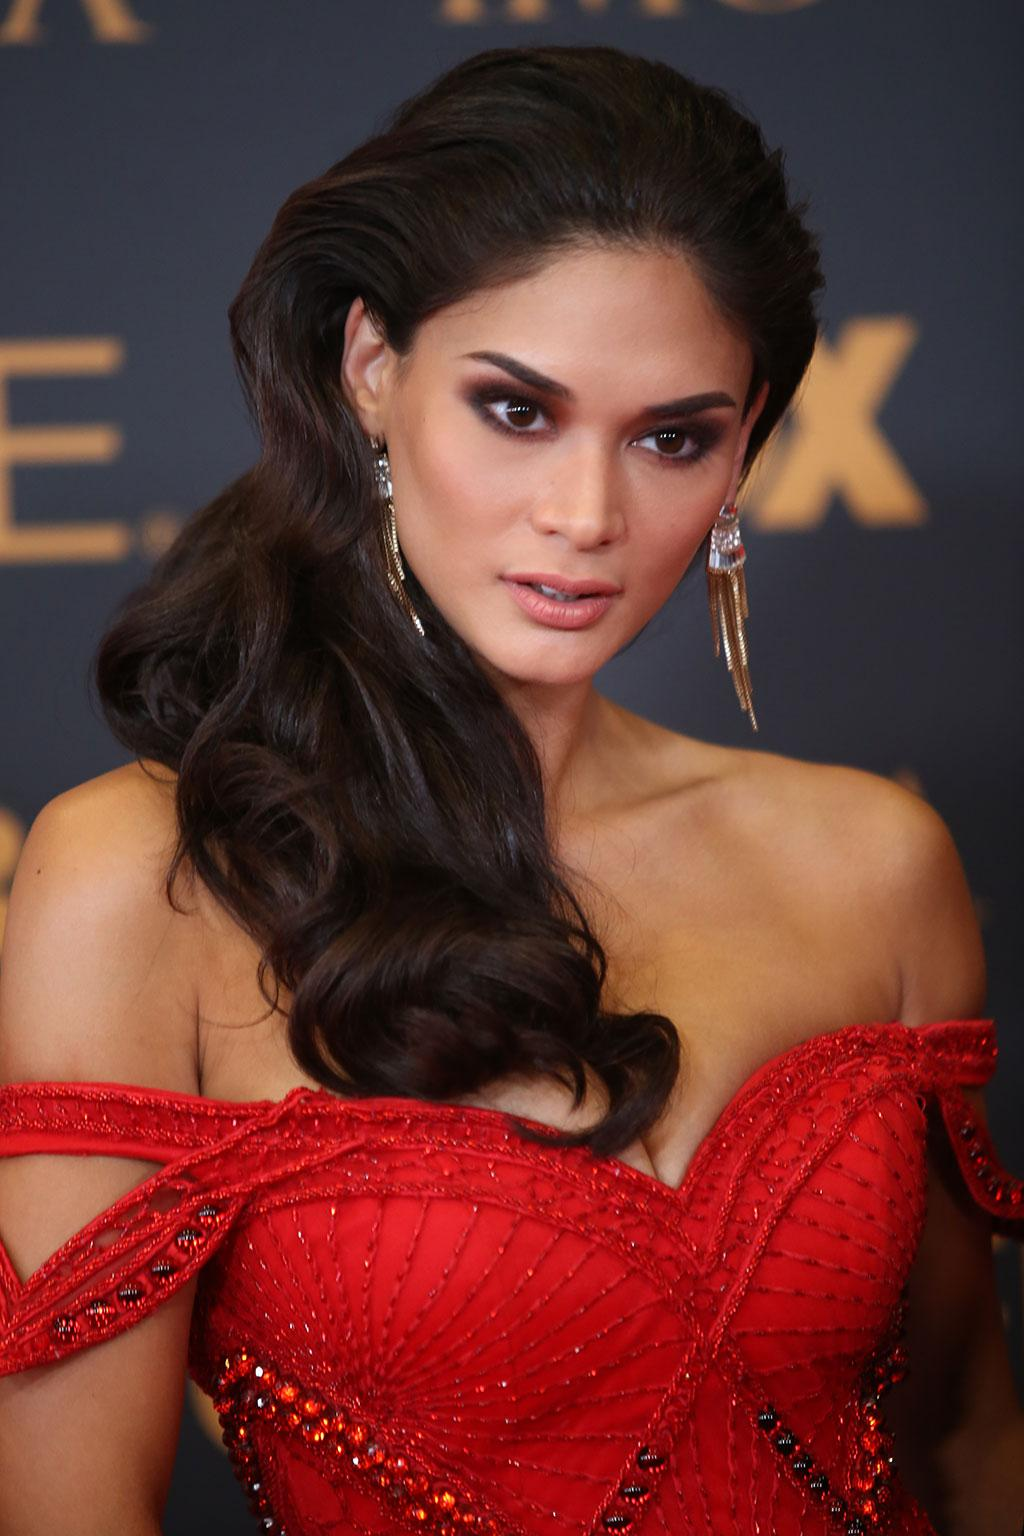 nudes Pia Wurtzbach (62 photos) Hot, Snapchat, see through